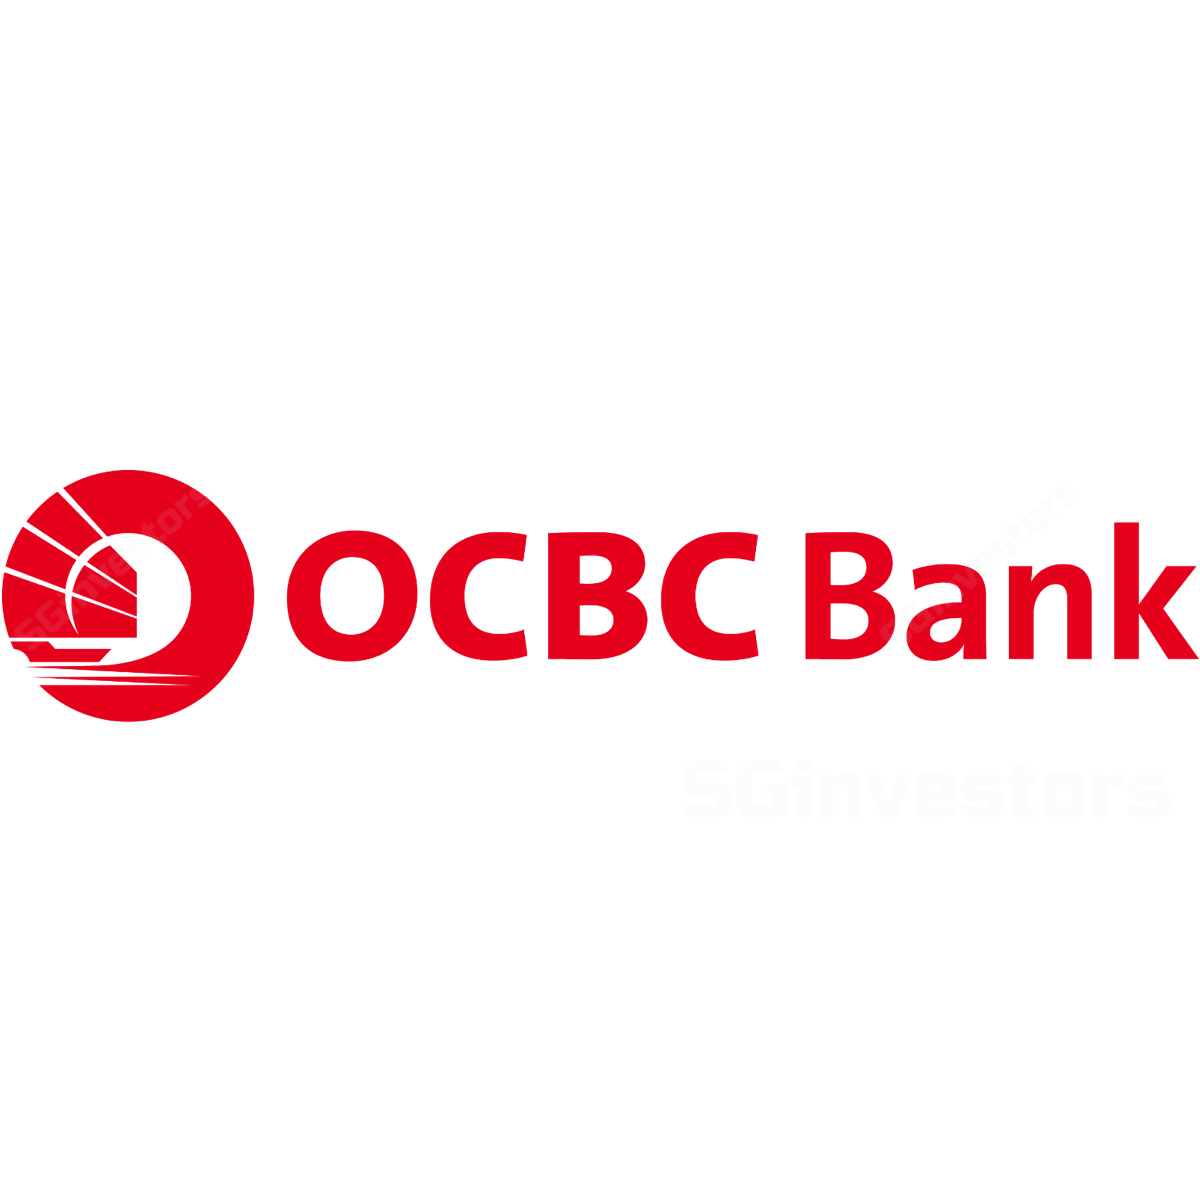 Oversea-Chinese Banking Corp (OCBC SP) - UOB Kay Hian 2017-05-11: 1Q17 Broad-based Growth In Non-interest Income